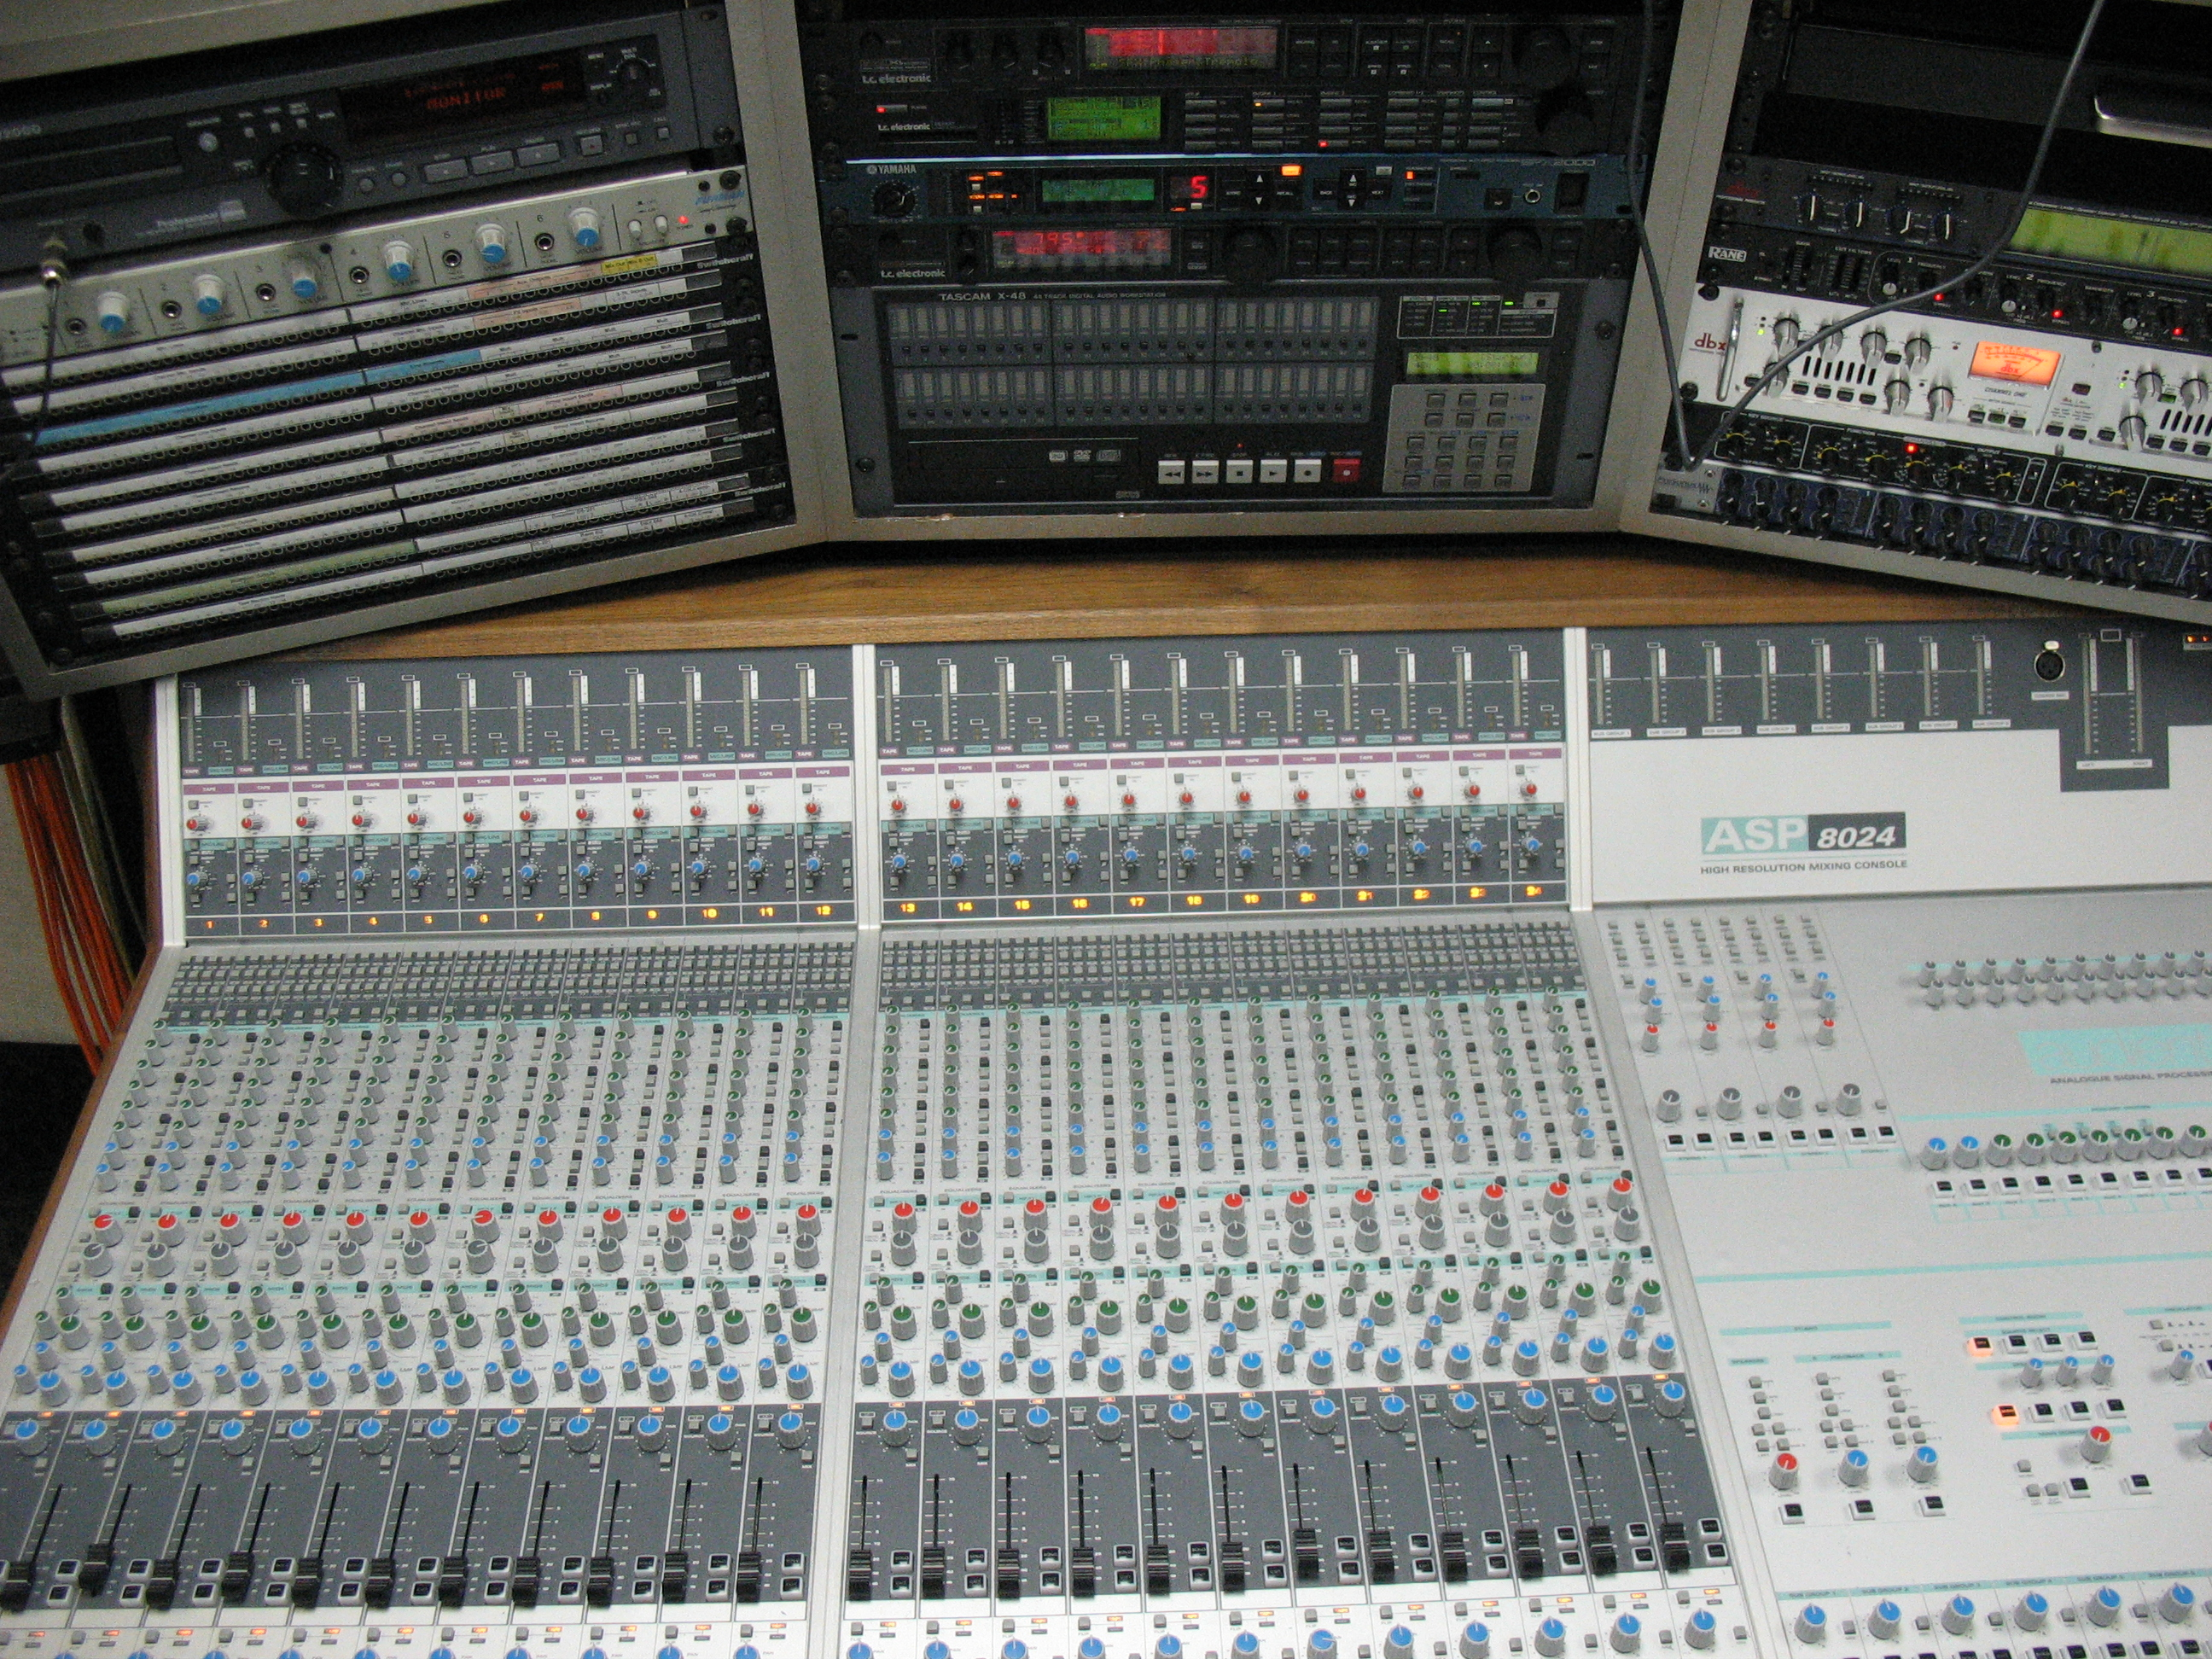 Audient ASP8024 for mixing